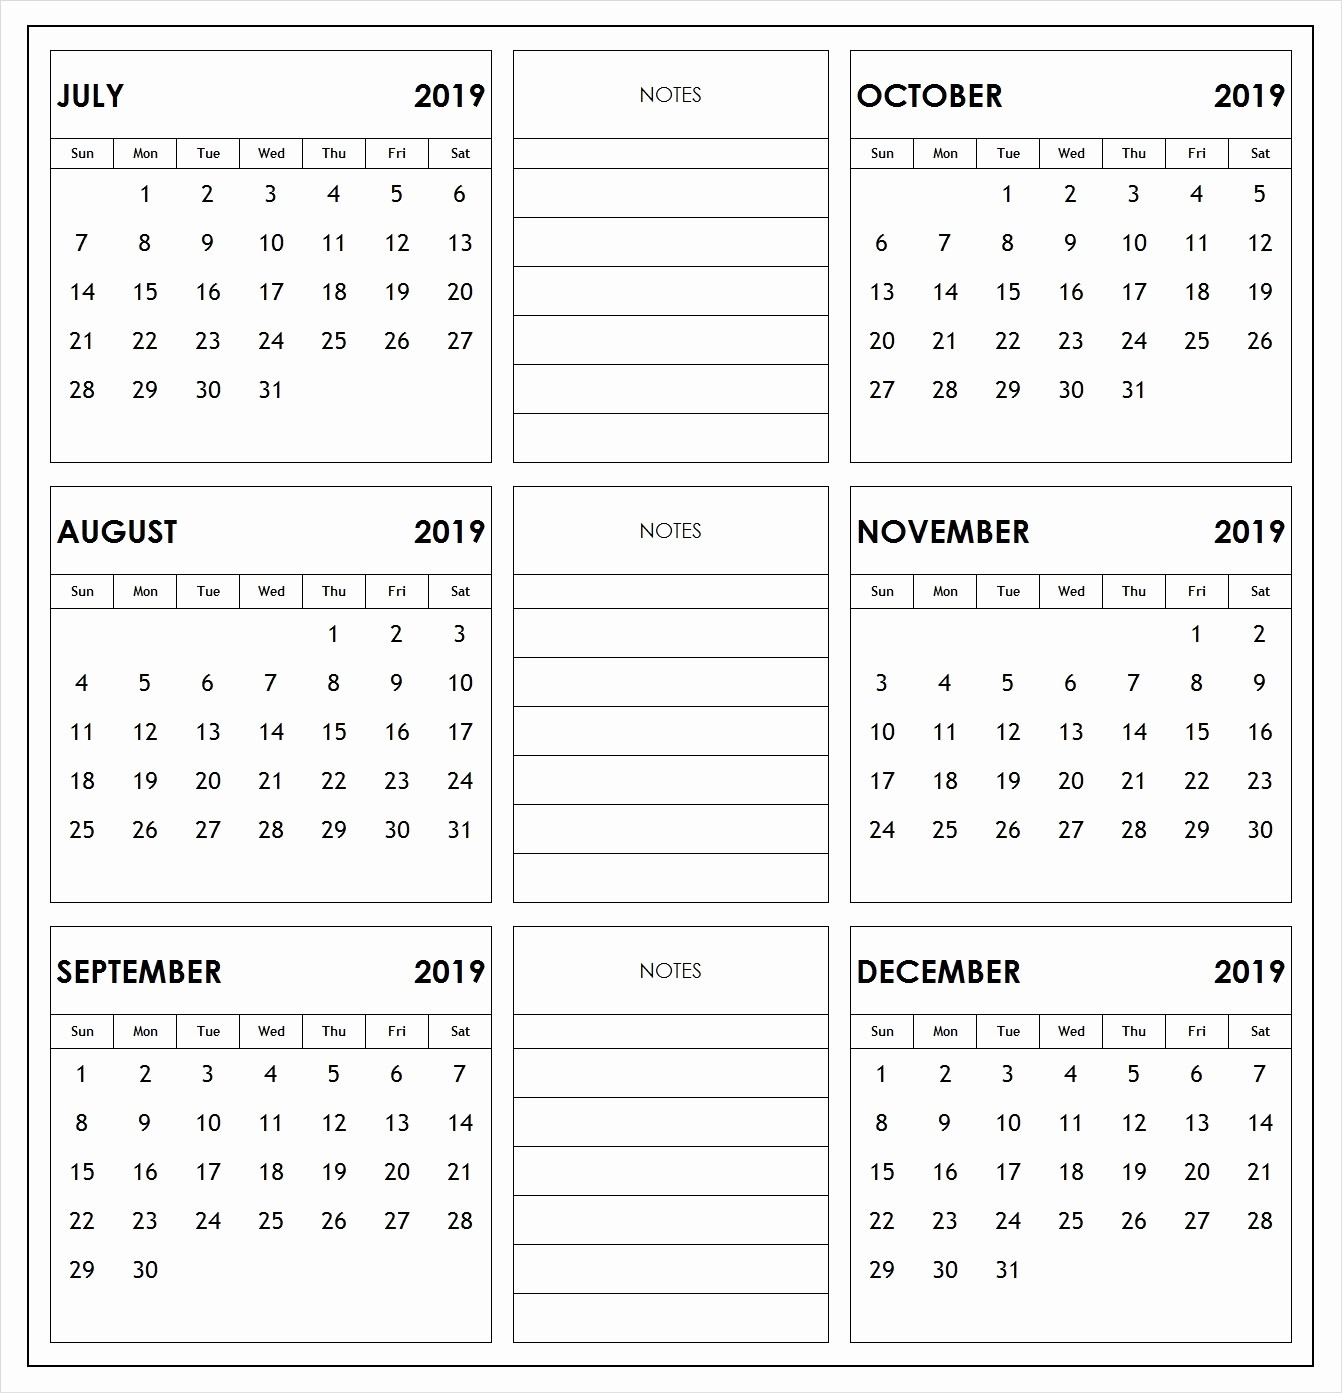 2019 Printable Calendar by Month New 2019 6 Months Half Year Calendar Printable Download